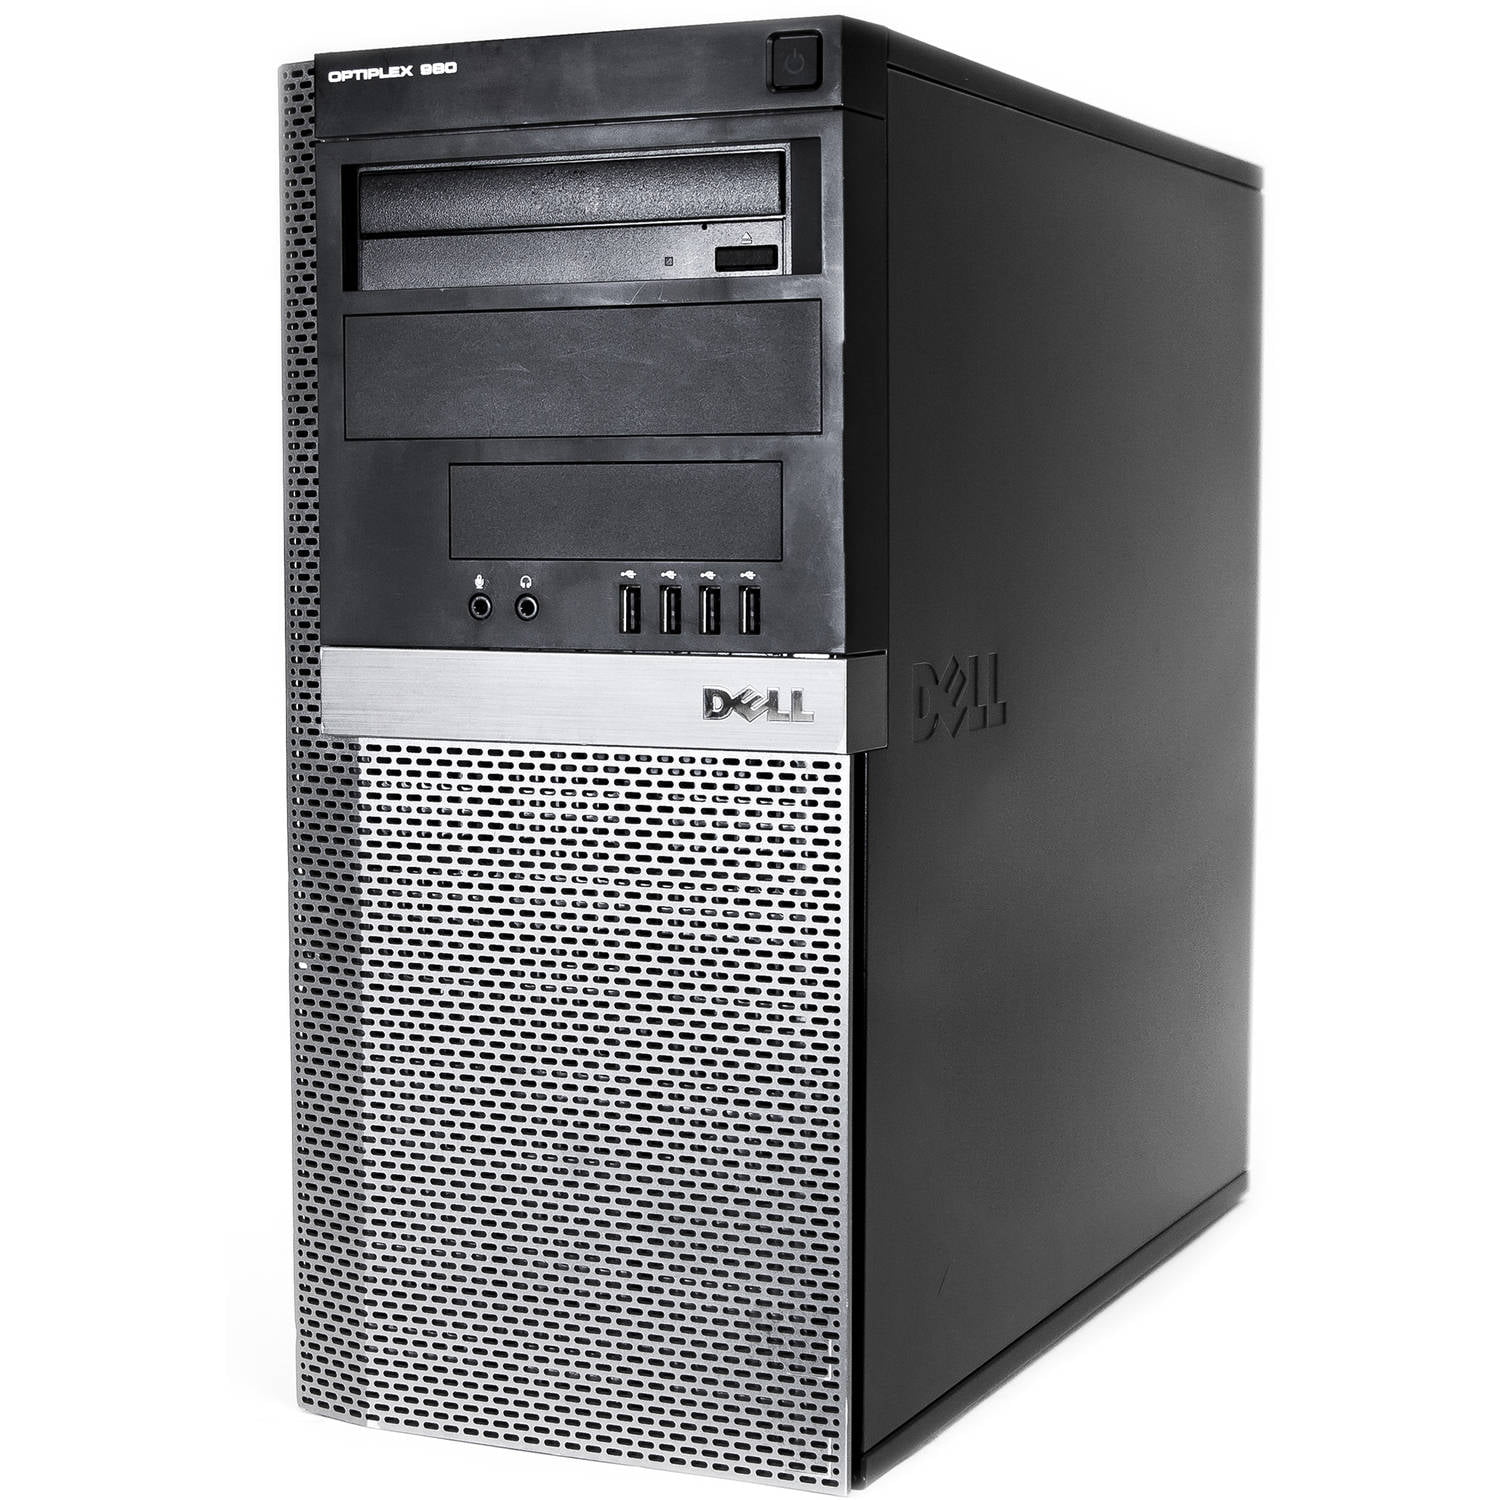 Surprising Refurbished Dell Optiplex 980 Desktop Pc With Intel Core I7 860 Processor 8Gb Memory 2Tb Hard Drive And Windows 10 Pro Monitor Not Included Download Free Architecture Designs Embacsunscenecom